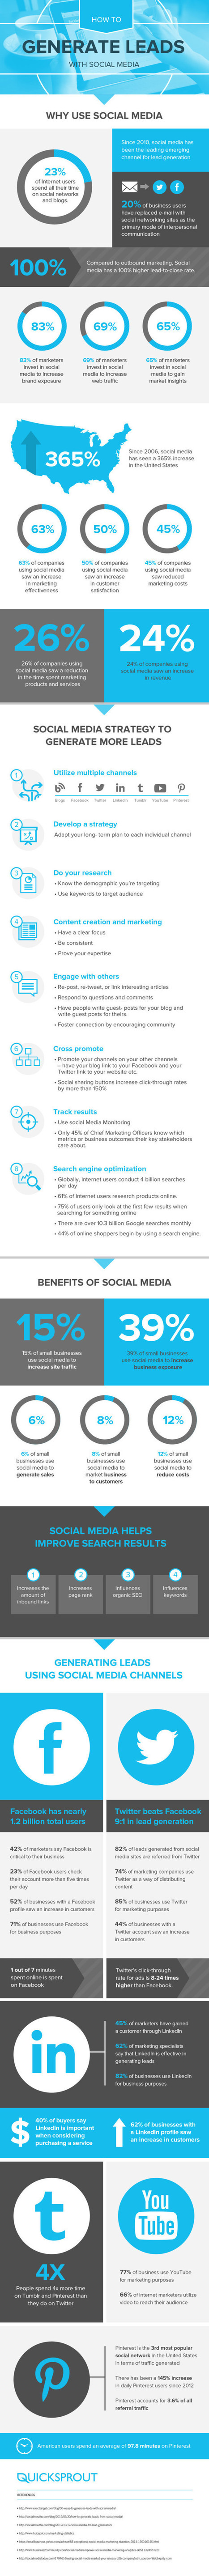 Here's How You Generate More Leads with Social Media #infographic | Can Pin Anything | Scoop.it